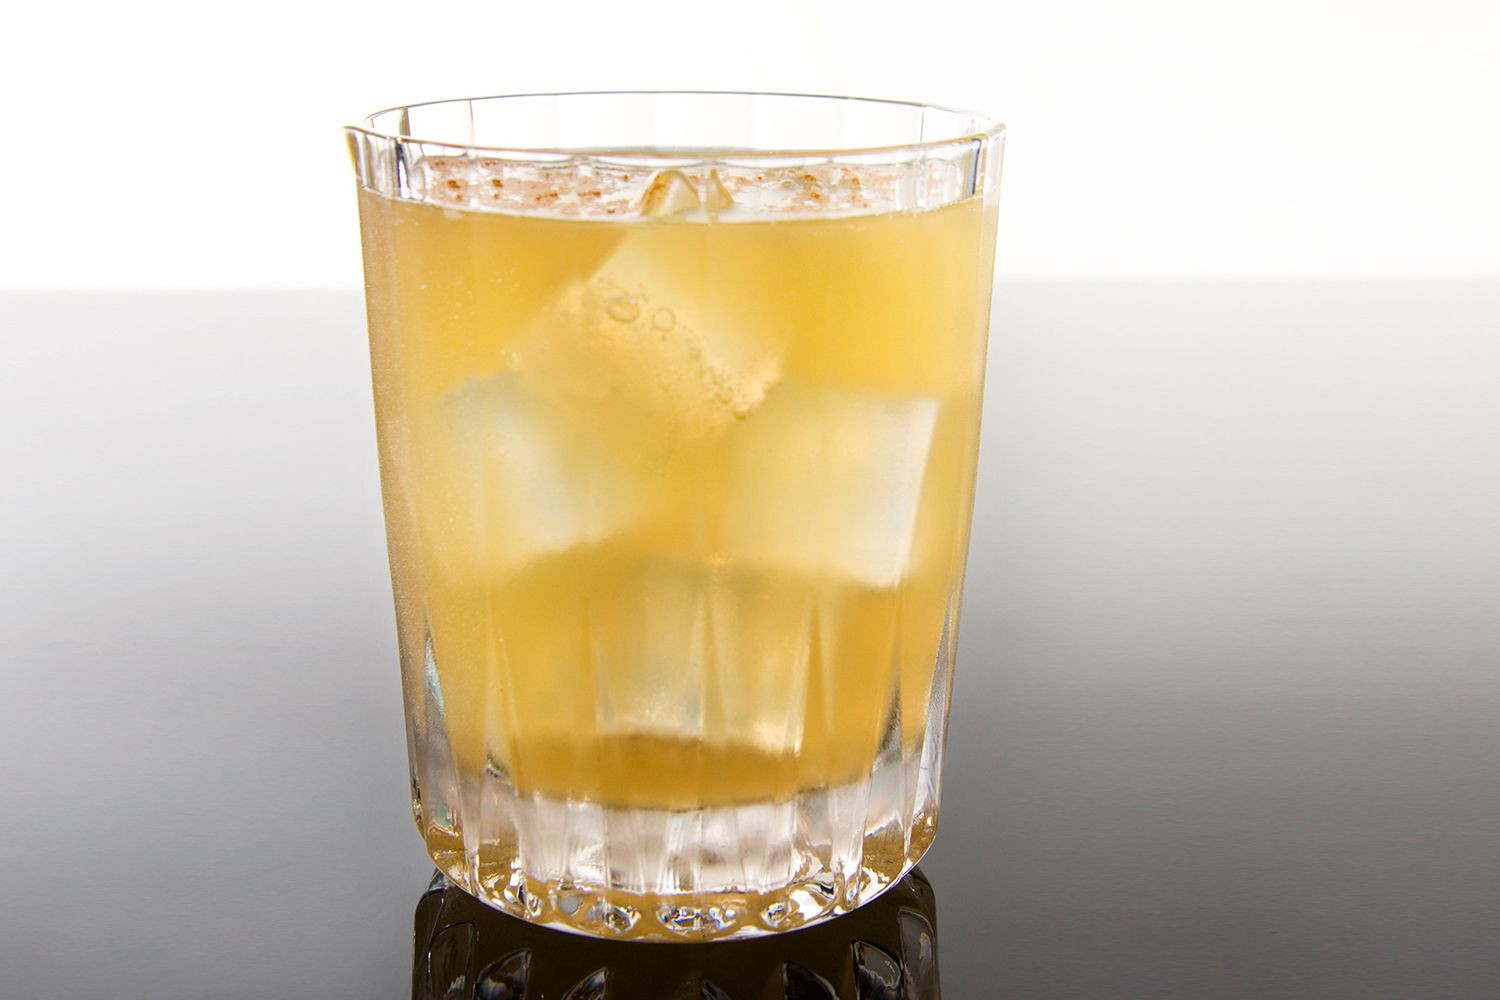 Vodka Drinks Mix  Vodka with Red Bull Popular Mixed Drink Recipes